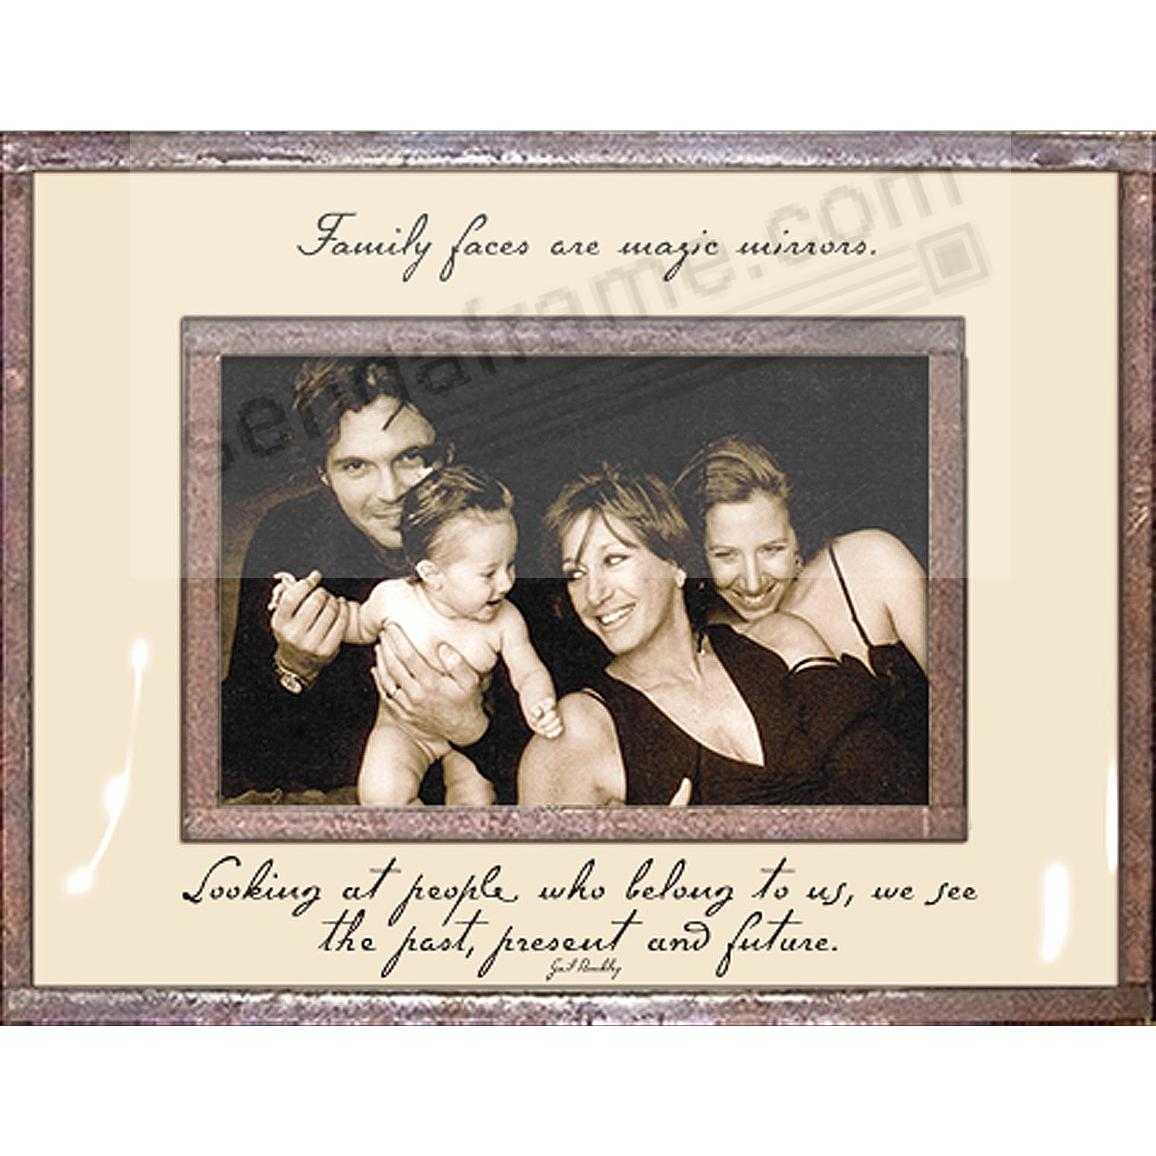 FAMILY FACES ARE MAGIC MIRRORS Copper + Clear Glass by Ben's Garden®